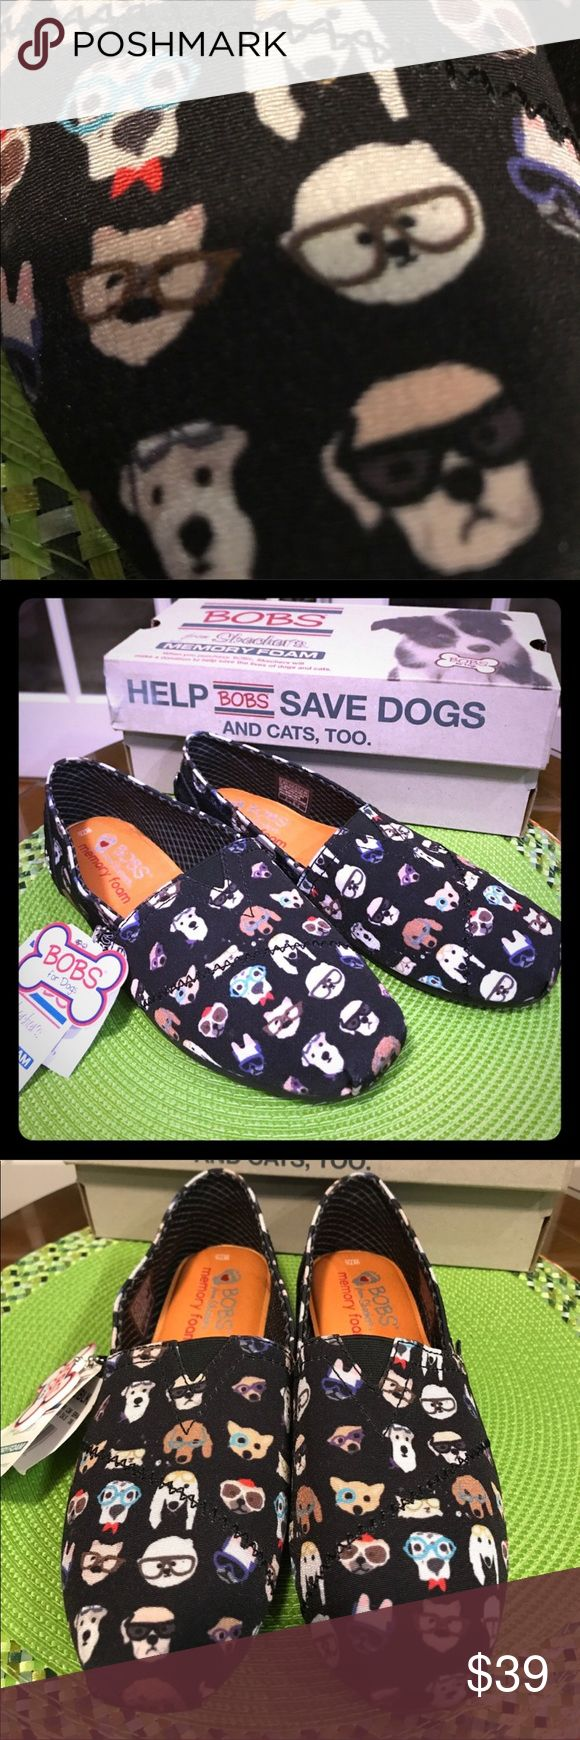 5 Bobs for Dogs from Sketchers Memory Foam Shoes RESTOCKED‼️  Super cute Bobs for Dogs from Sketchers Memory Foam Shoes! These black shoes with nerdy dogs all over them are just adorable and comfortable. They have memory foam and an arch pillow. Purchasing these shoes help to save dogs' and cats' lives. ☺️ Skechers Shoes Flats & Loafers #FavoriteMemoryFoam